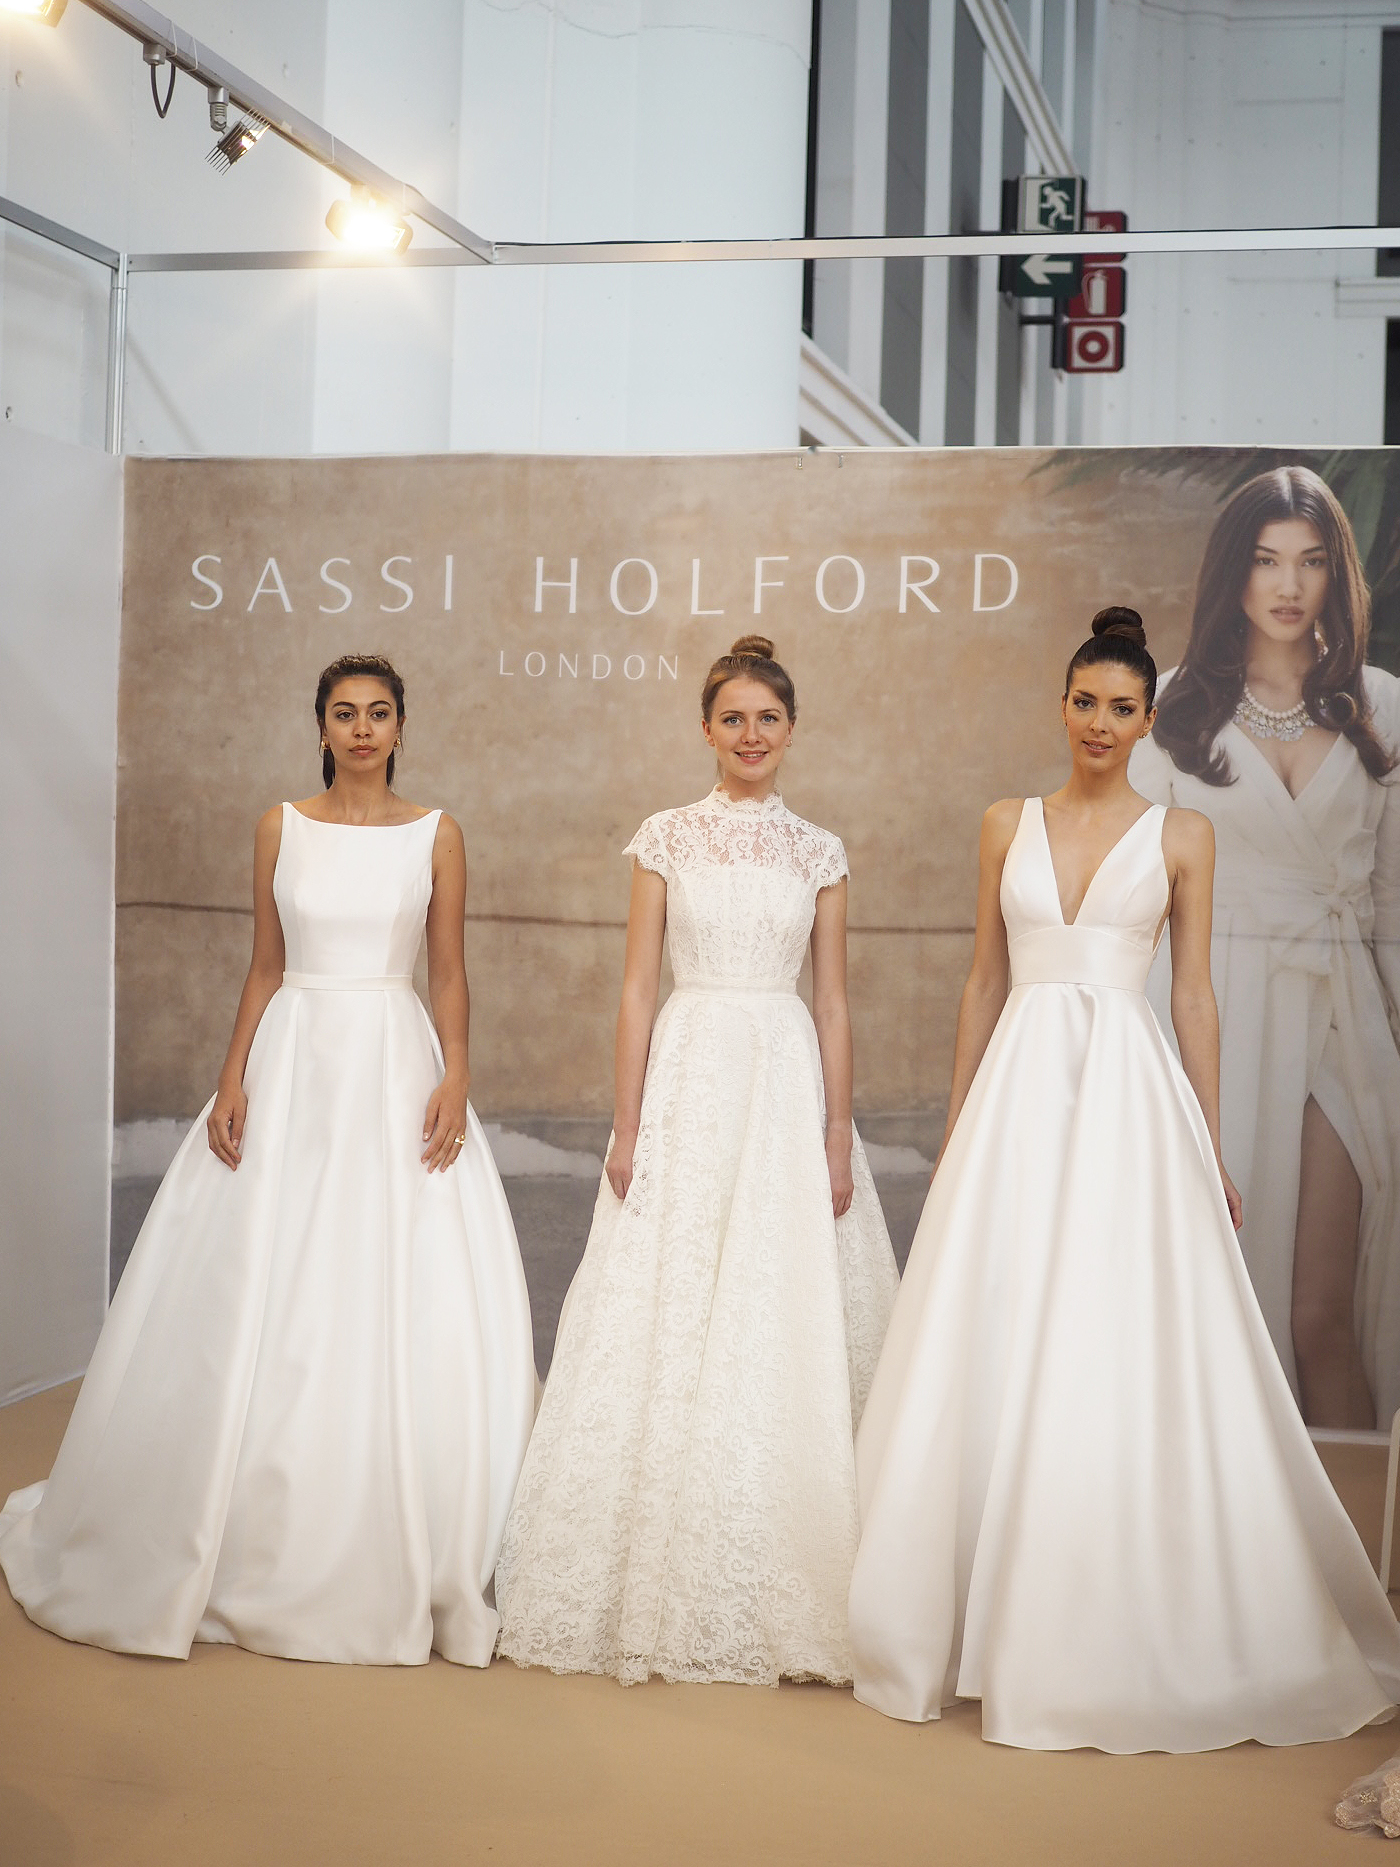 Si Holford S 2020 Enamour Collection A Sneak Preview